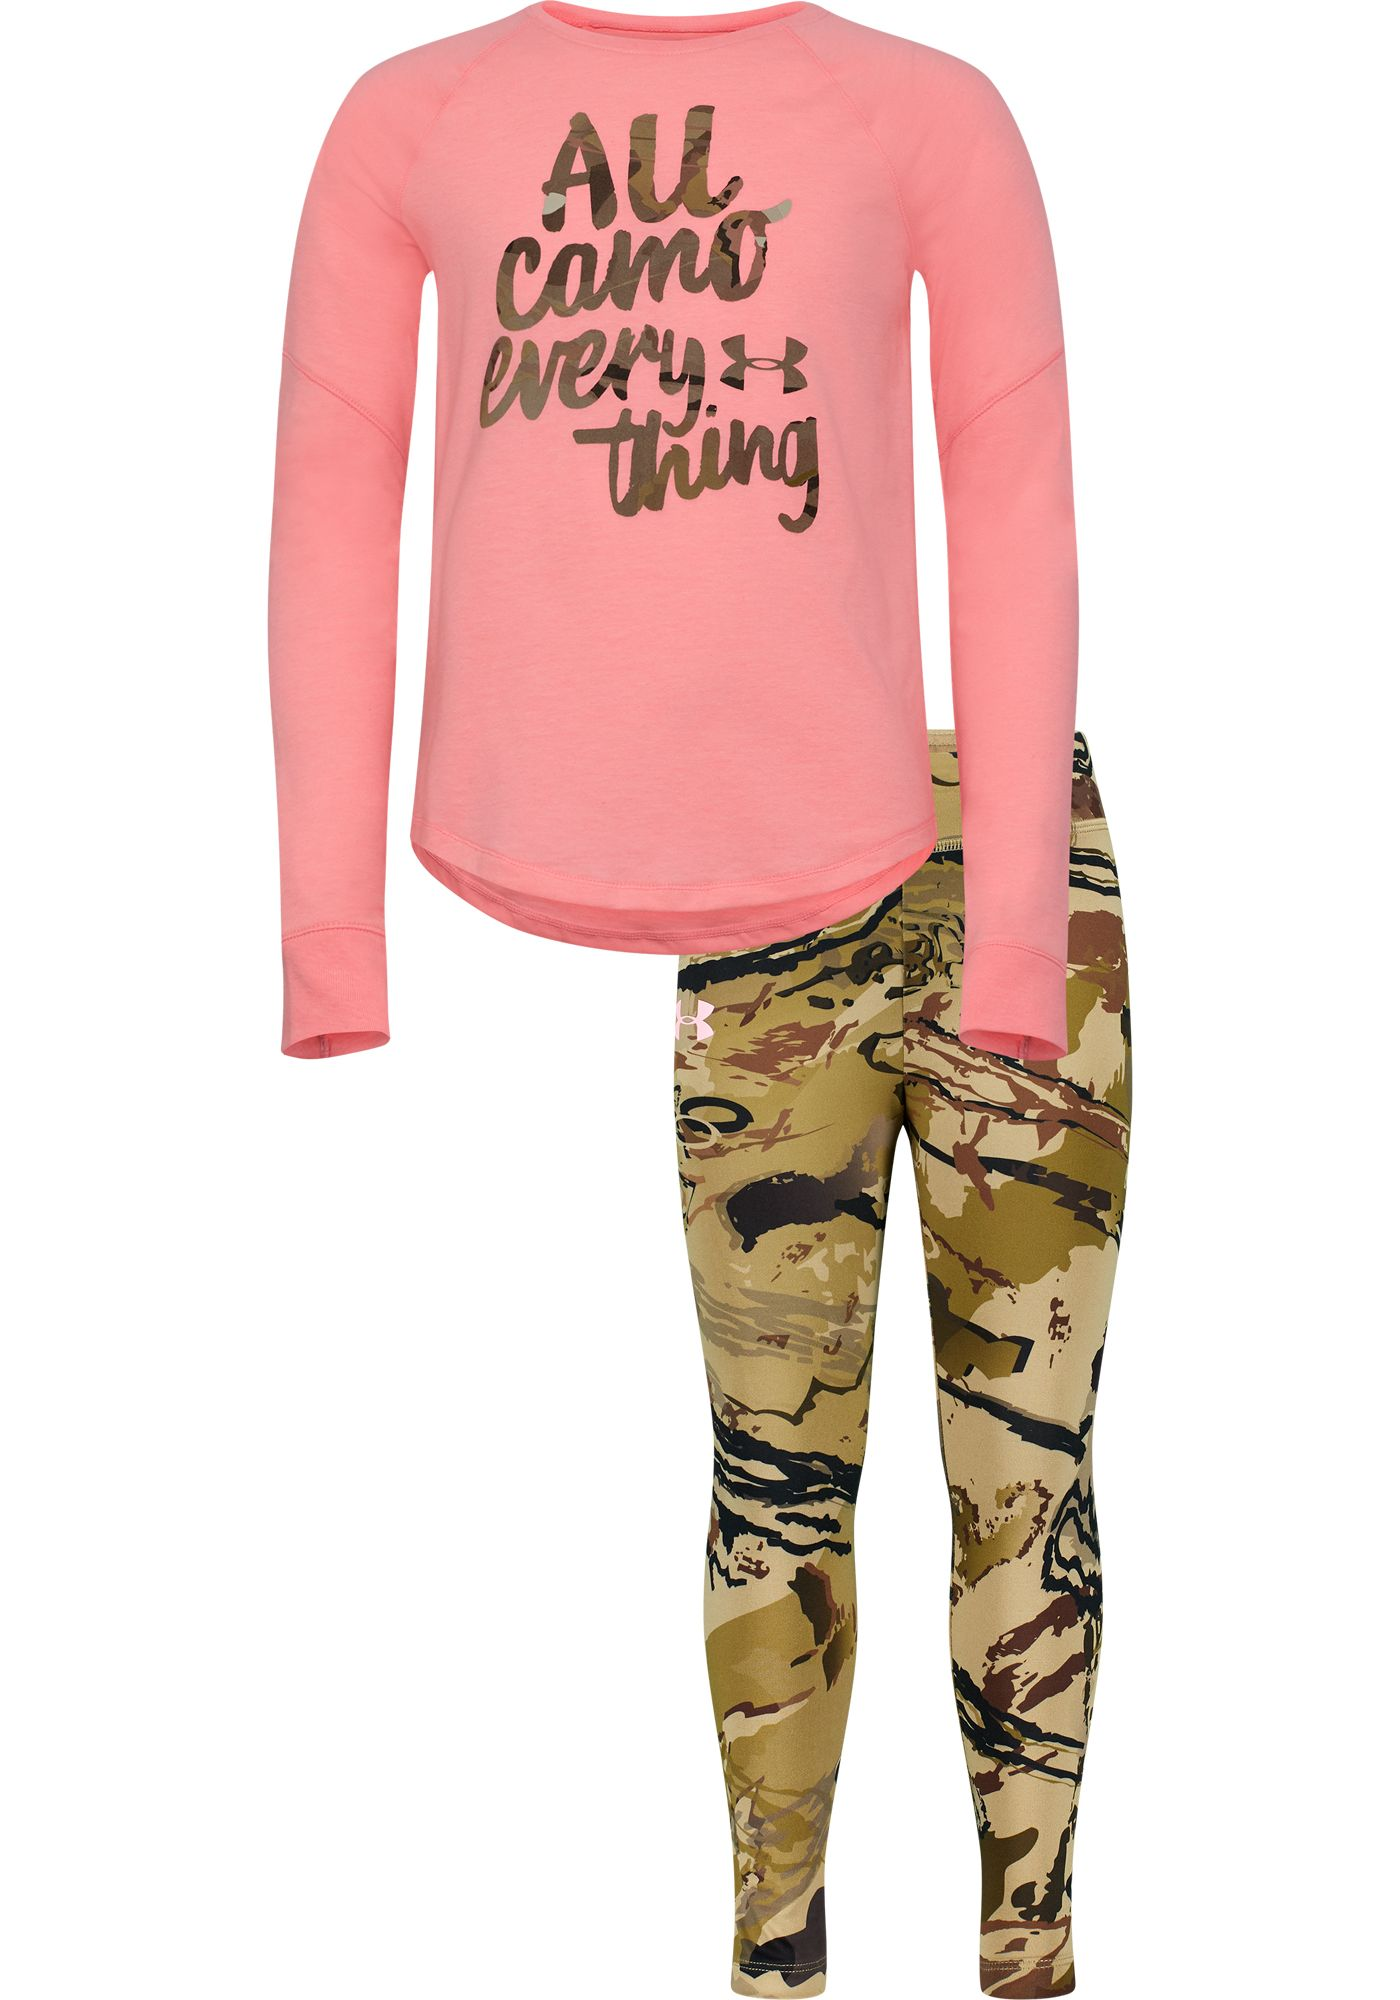 Under Armour Toddler Girls' All Camo Everything T-Shirt and Pants Set